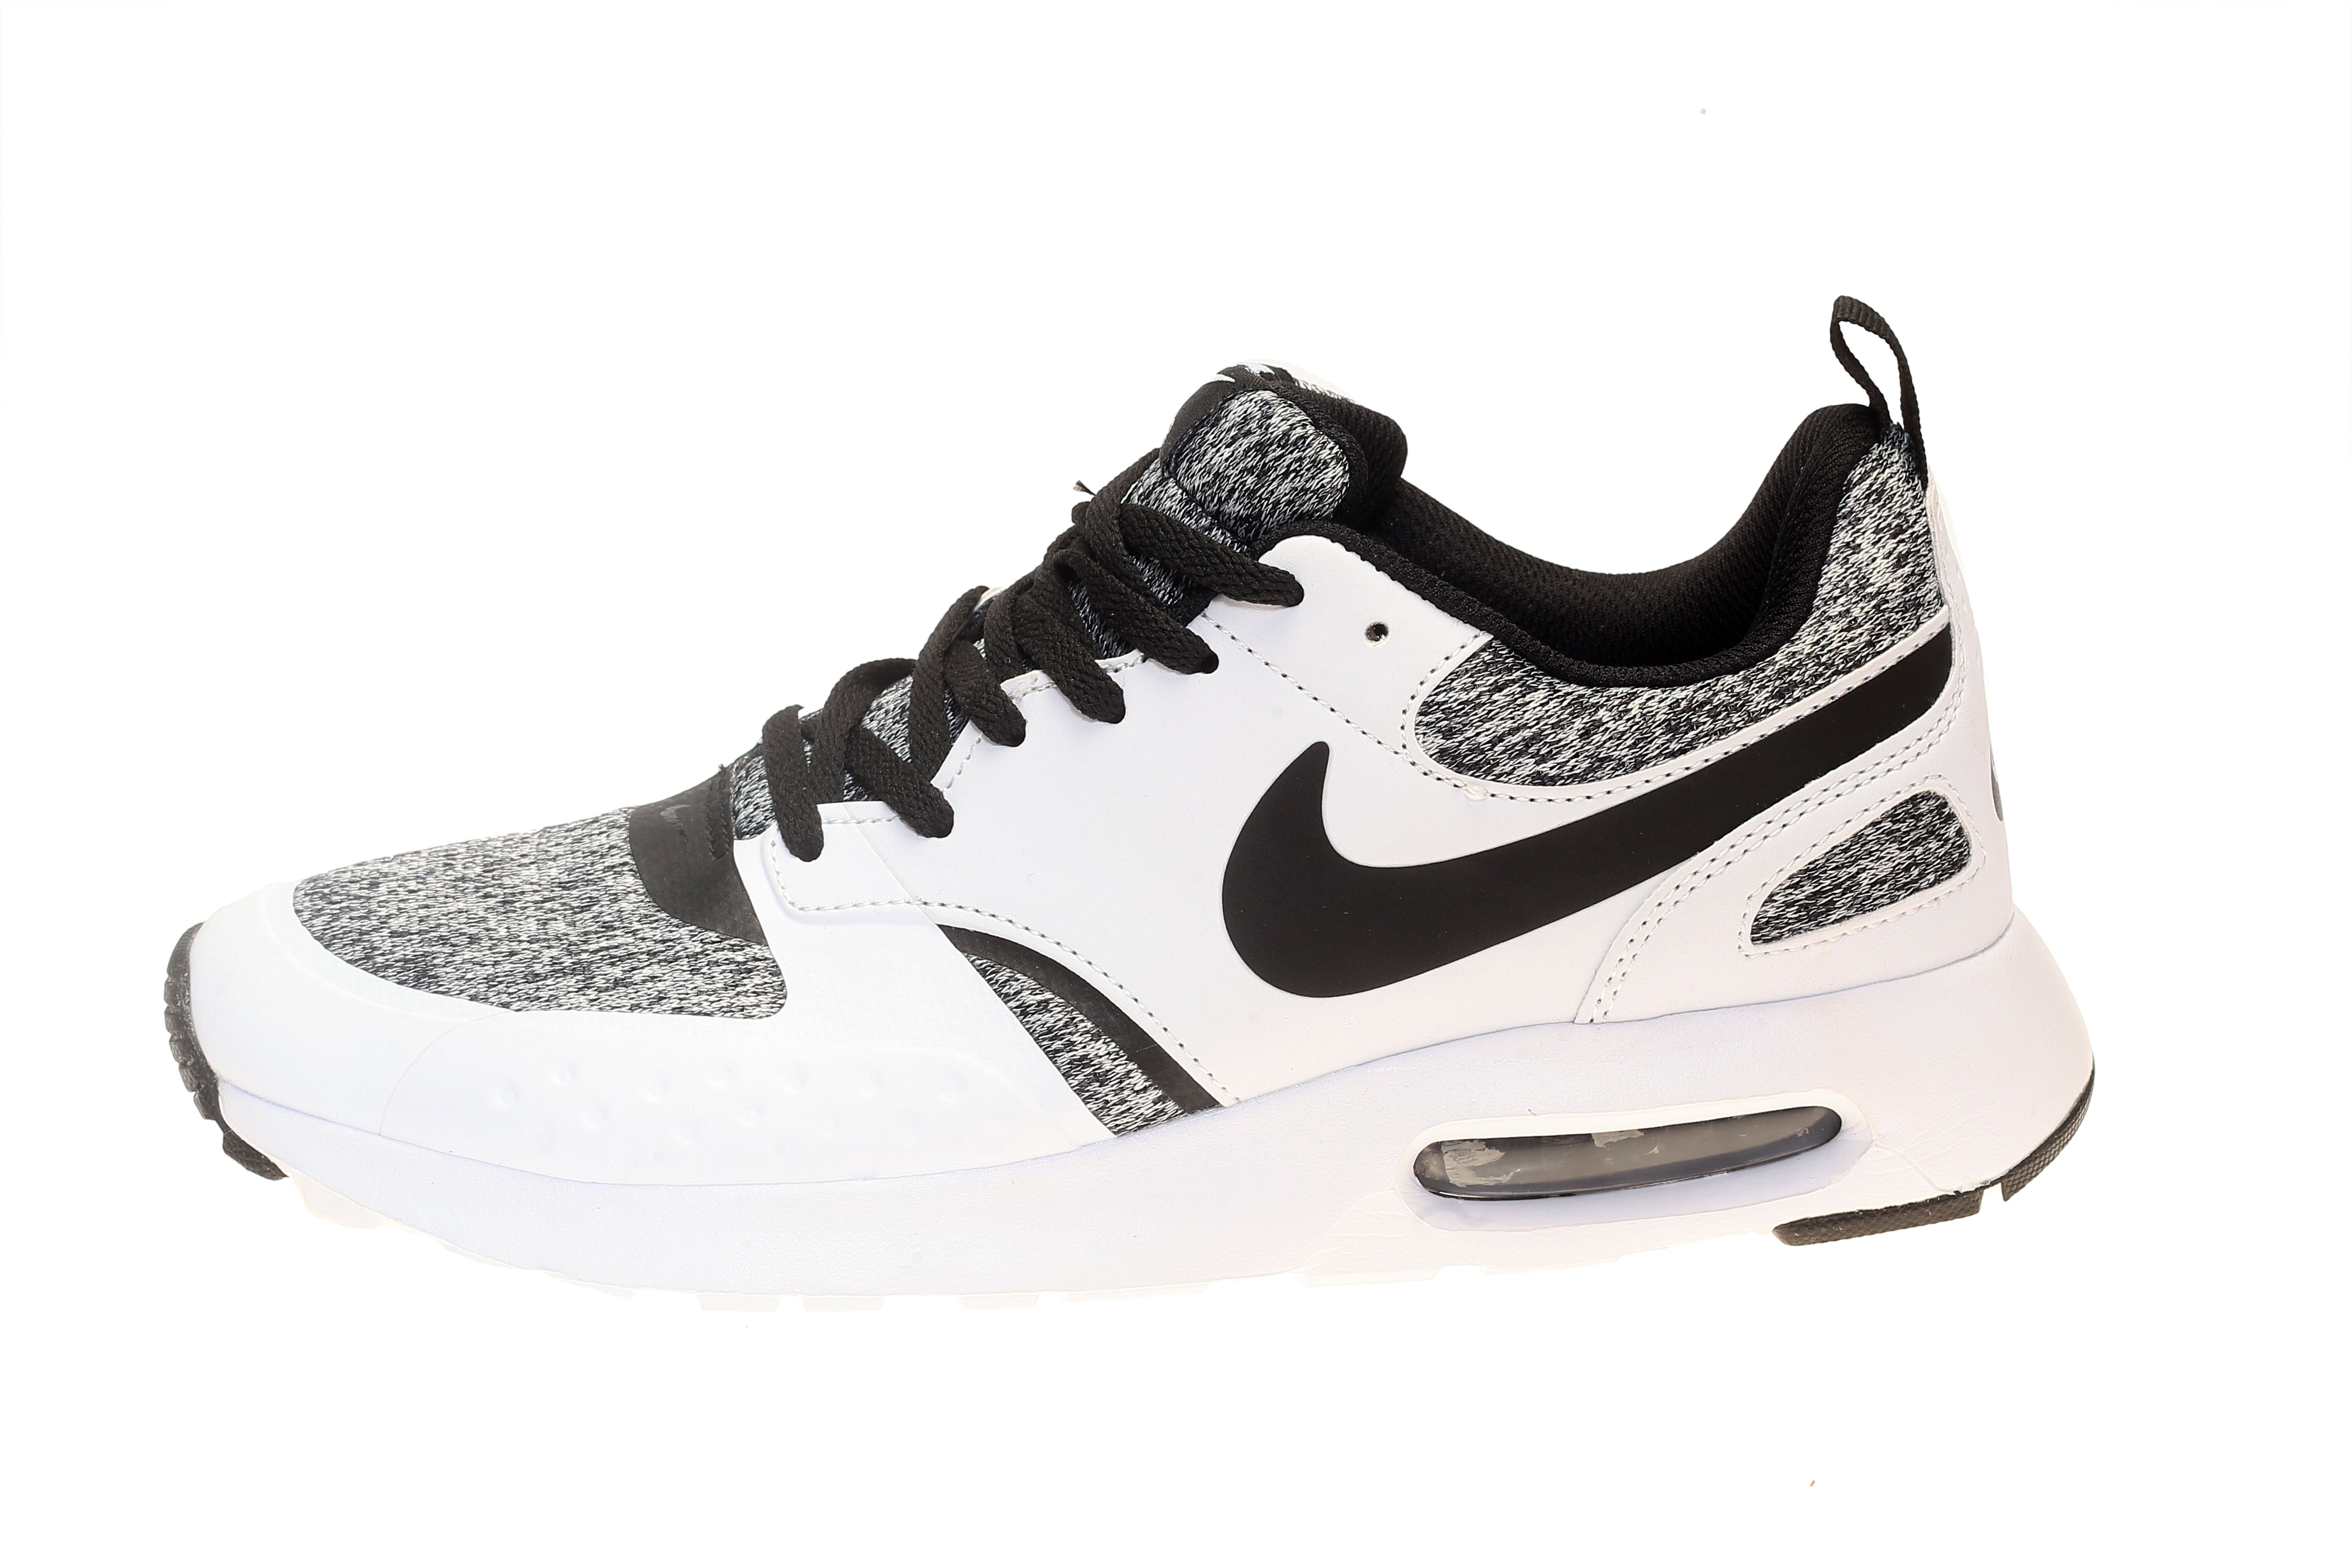 sports shoes 01bf6 957cb Nike Airmax Tavas 2 Vision 2018 Limited Gray Running Shoes - Buy Nike Airmax  Tavas 2 Vision 2018 Limited Gray Running Shoes Online at Best Prices in  India ...